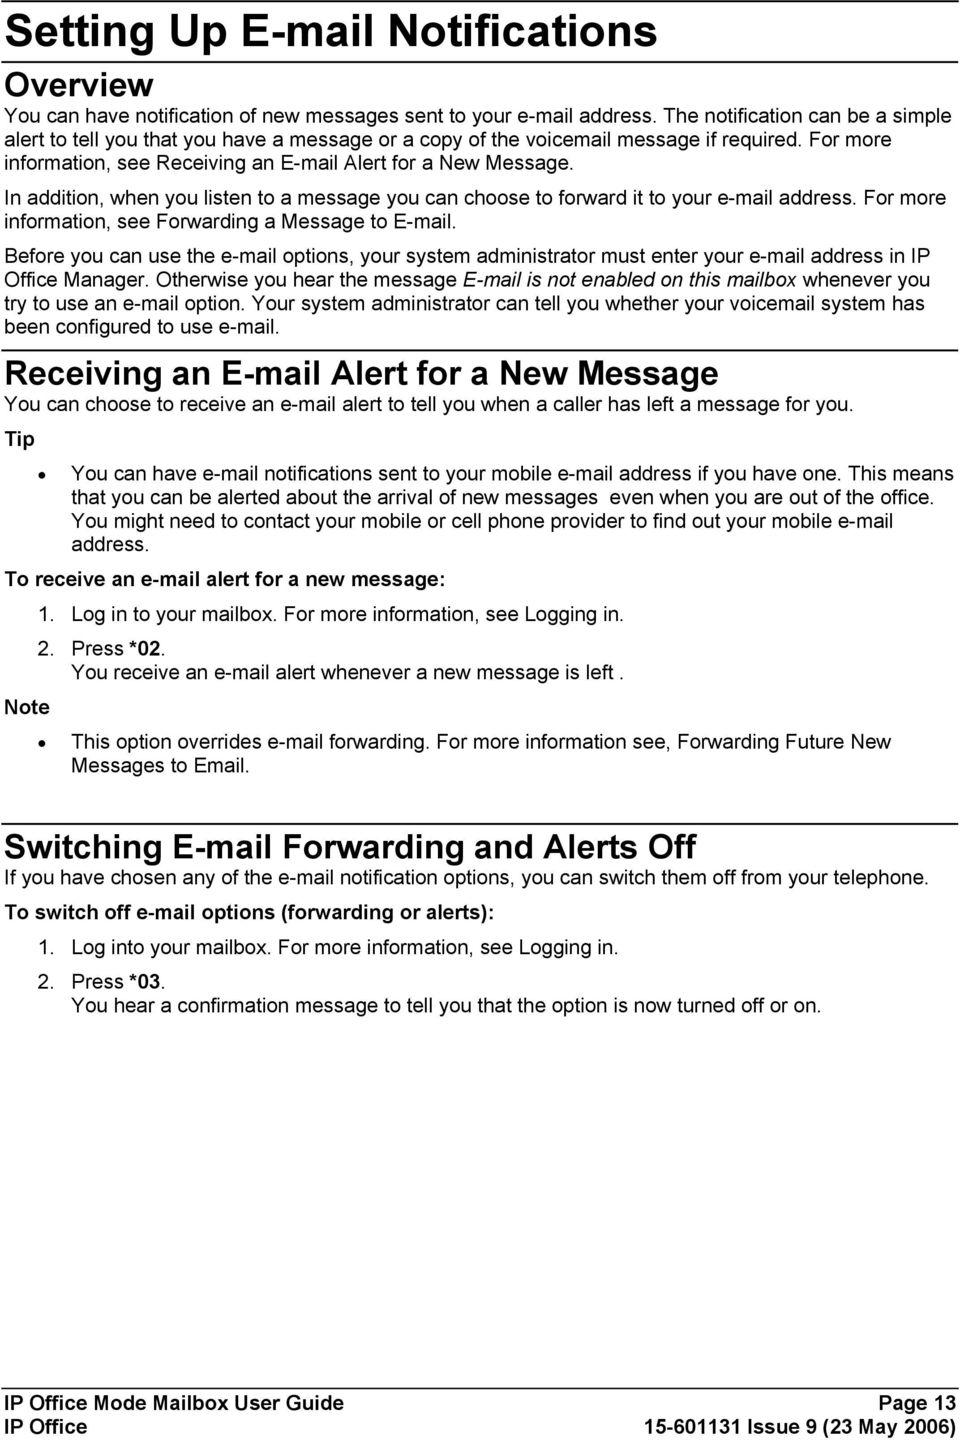 In addition, when you listen to a message you can choose to forward it to your e-mail address. For more information, see Forwarding a Message to E-mail.